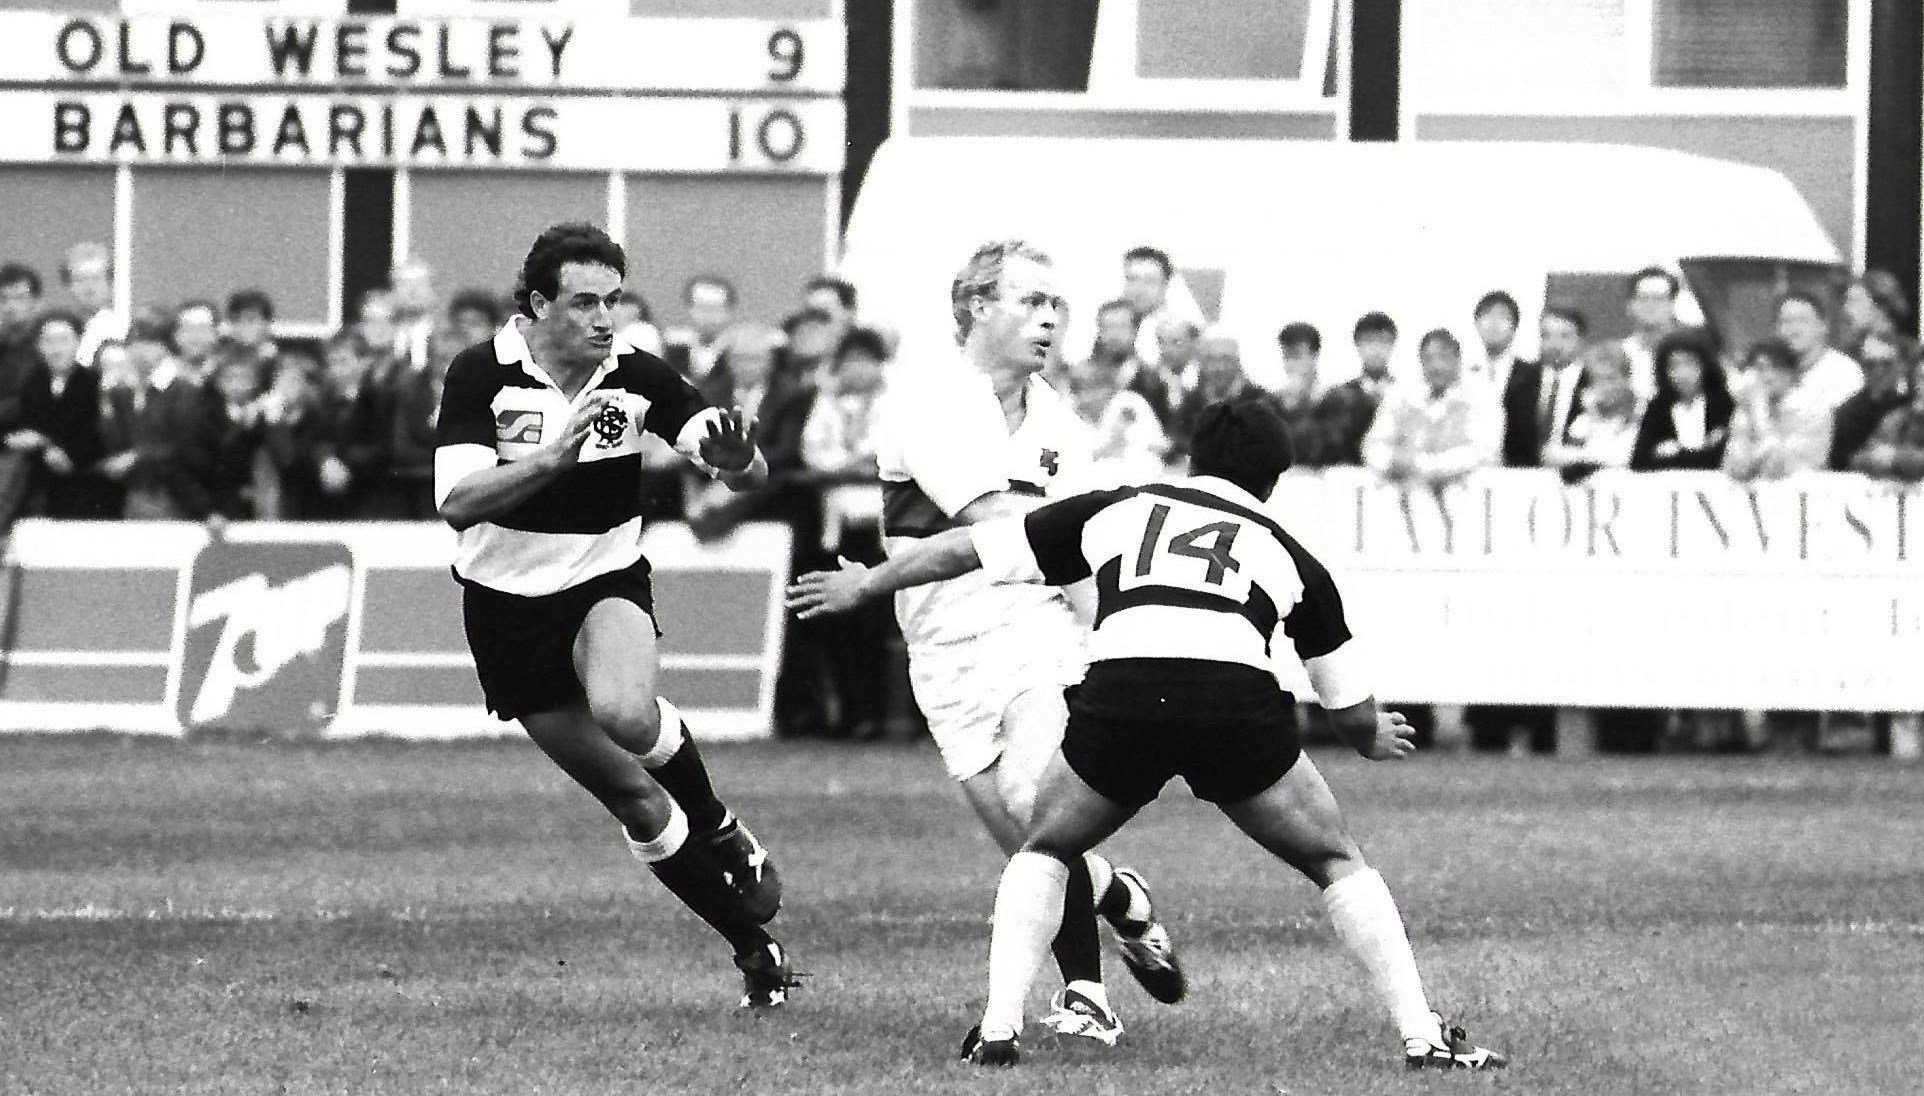 find out more about Old Wesley v Barbarians Team and Club Reunion